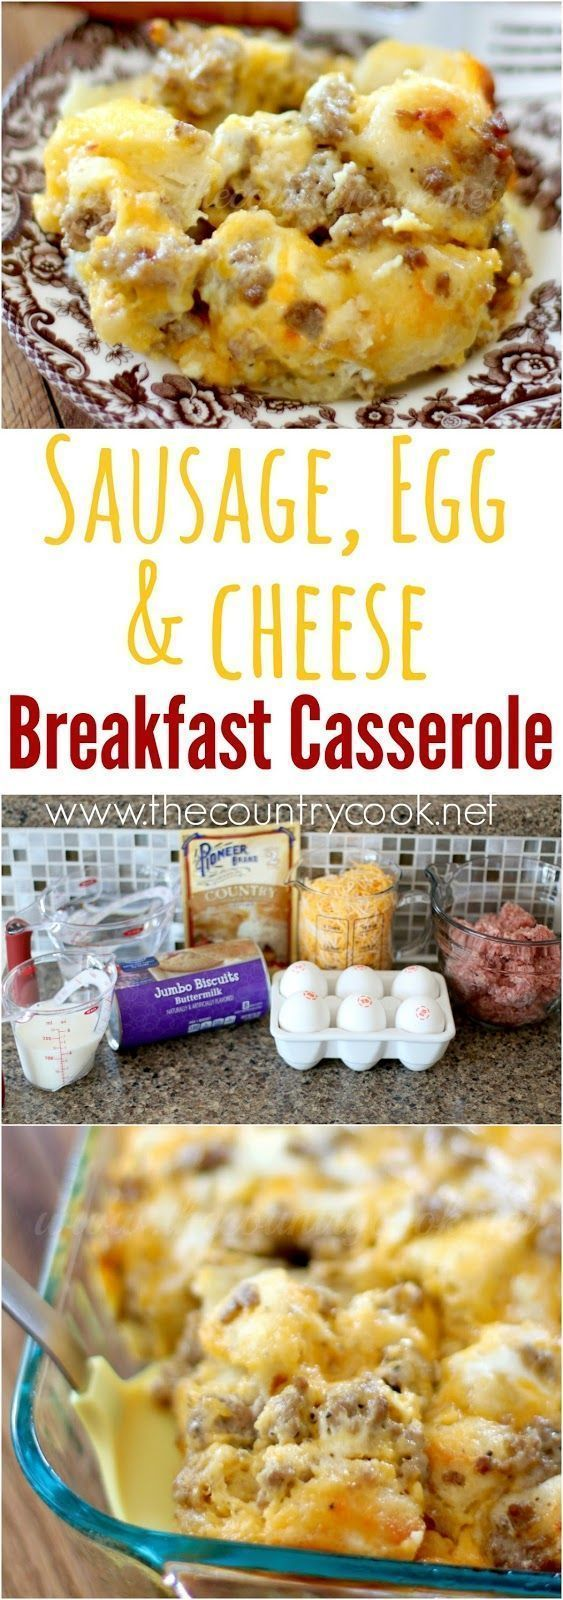 Sausage, Egg & Cheese Biscuit Casserole recipe from The Country Cook.